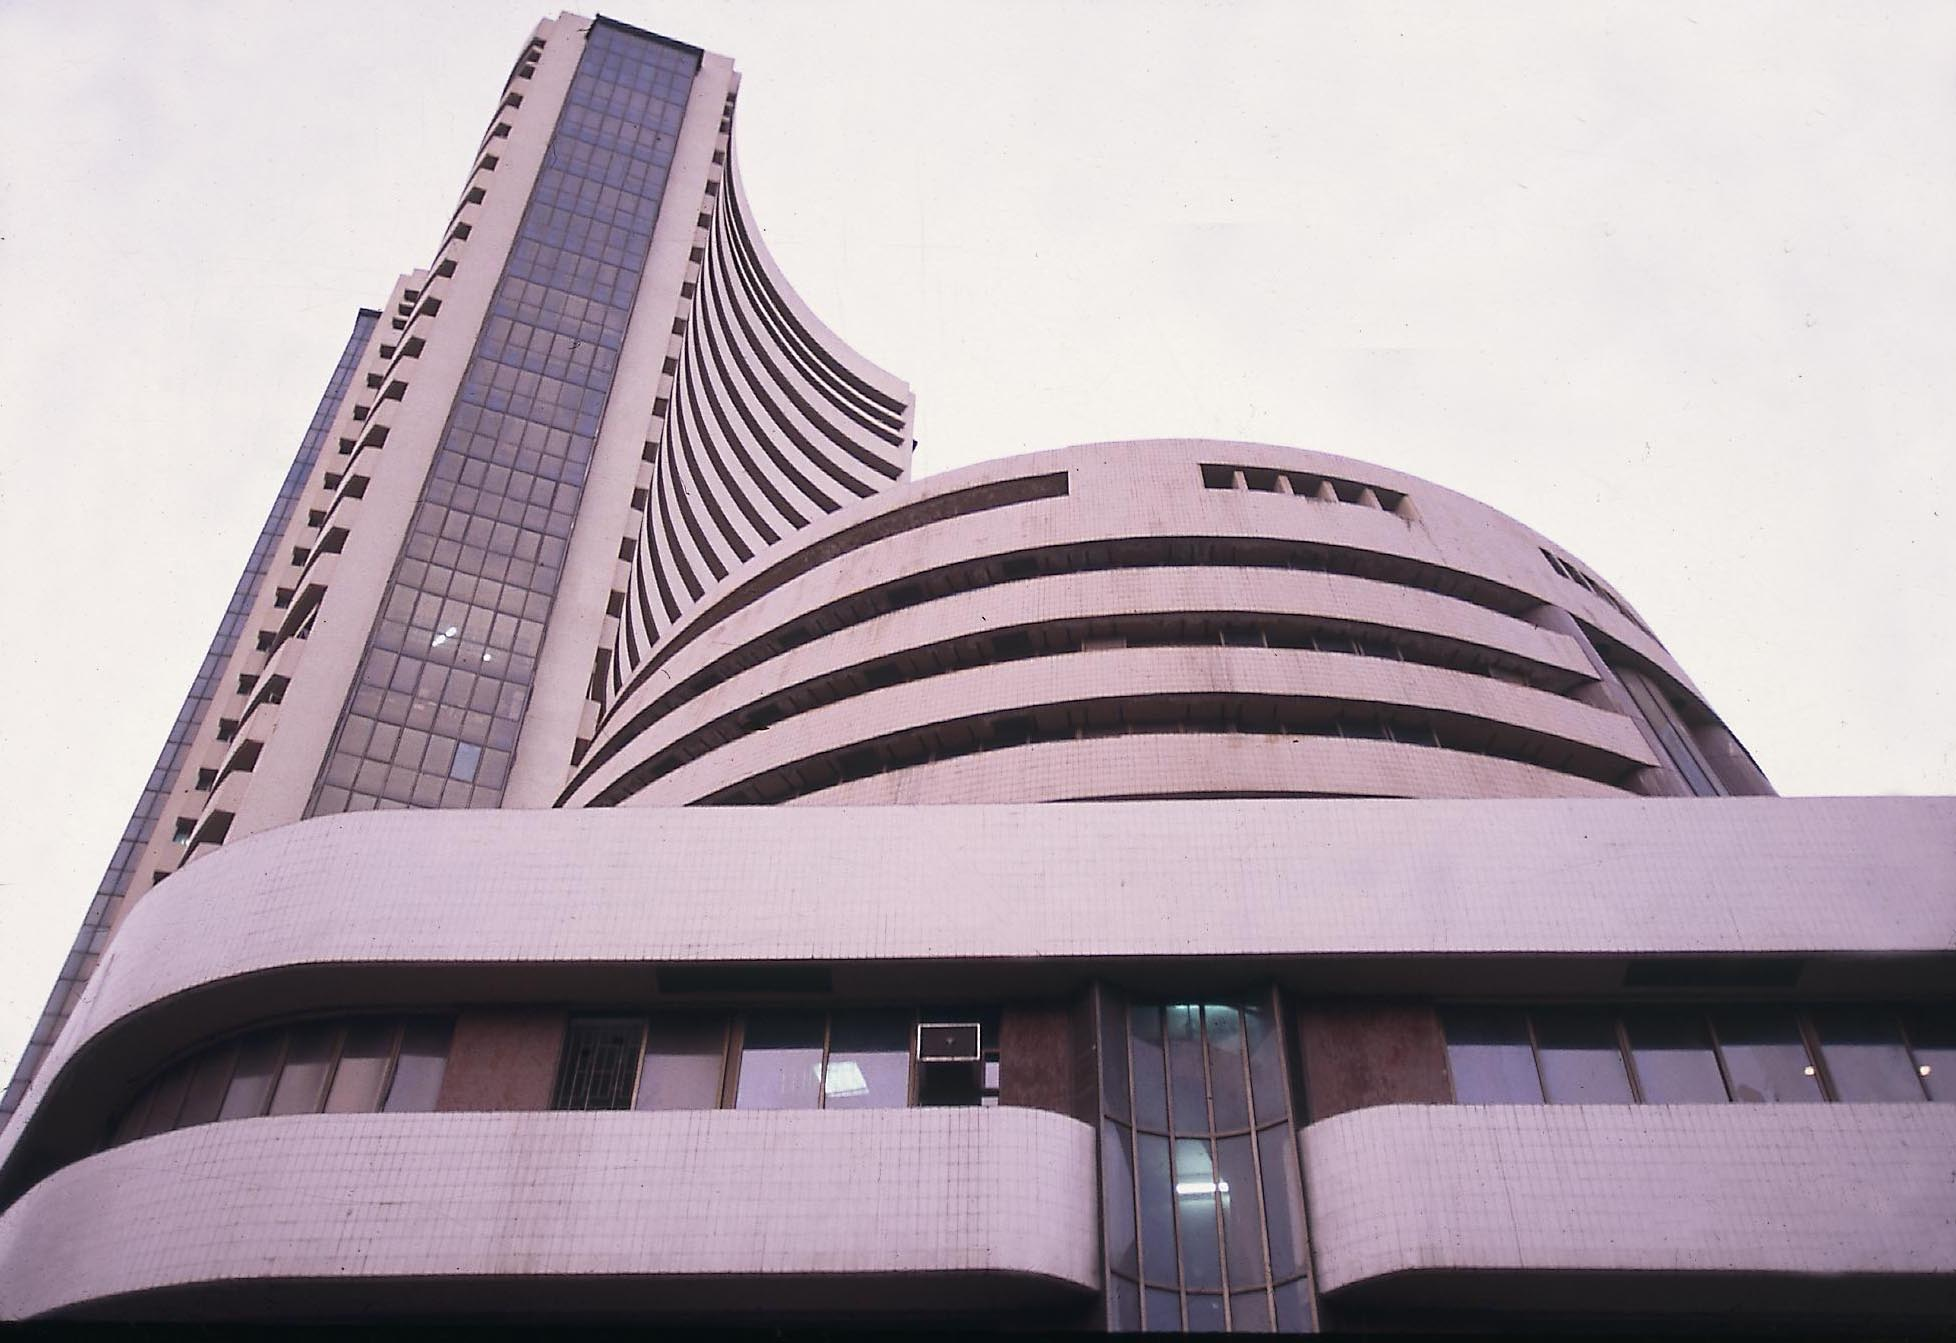 The gains saw the market capitalisation of the BSE-listed companies rising Rs 1,81,930.89 crore to Rs 1,54,55,740.67 crore.